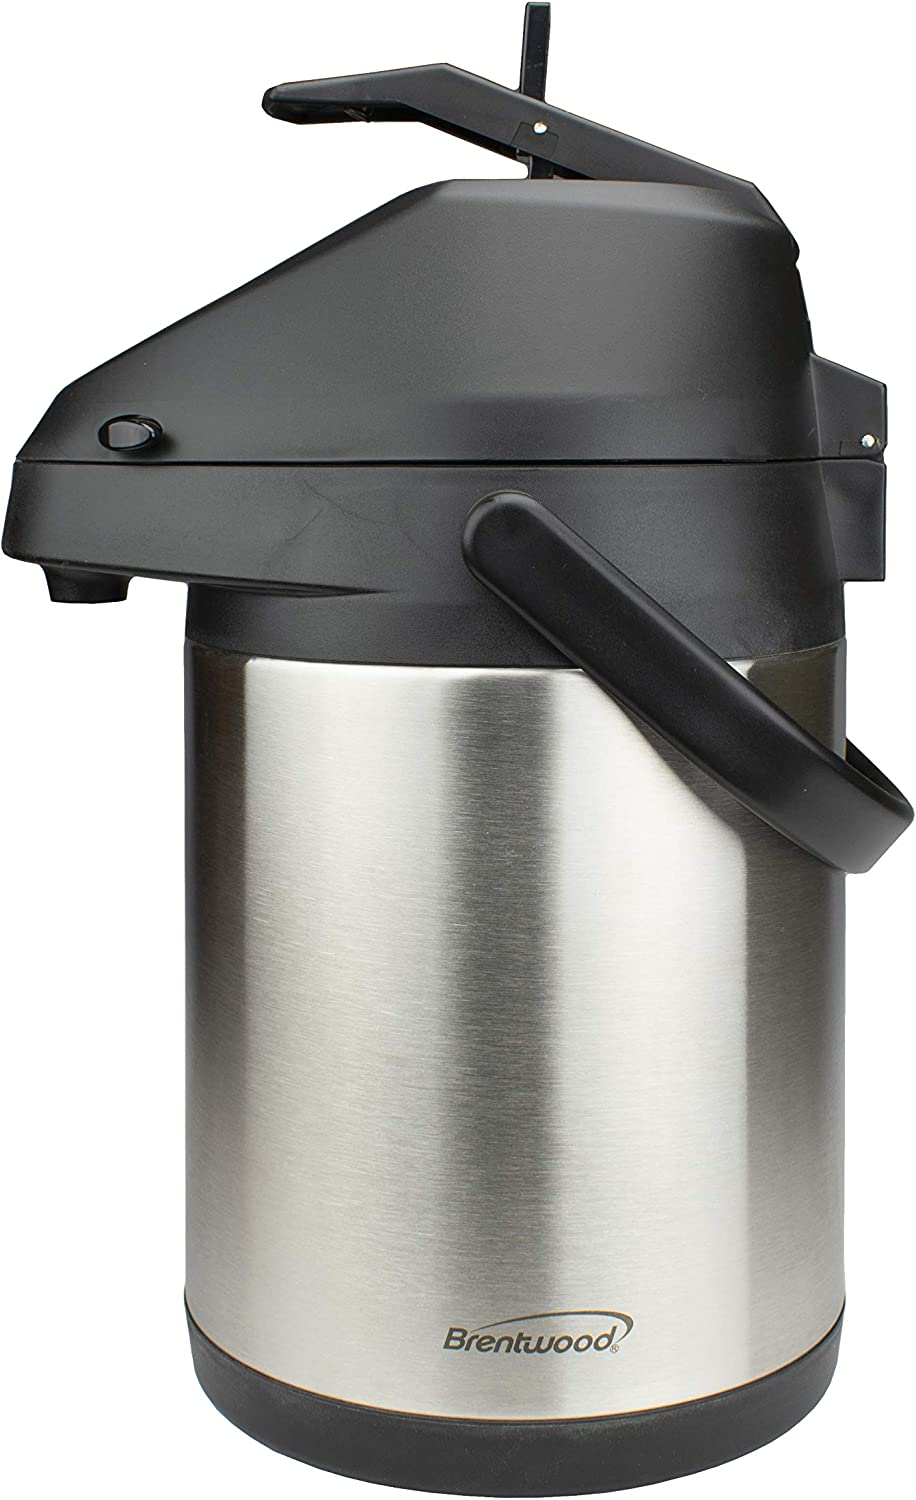 Brentwood CTSA-2500 2.5-Liter Airpot Hot & Cold Drink Dispenser, Stainless Steel